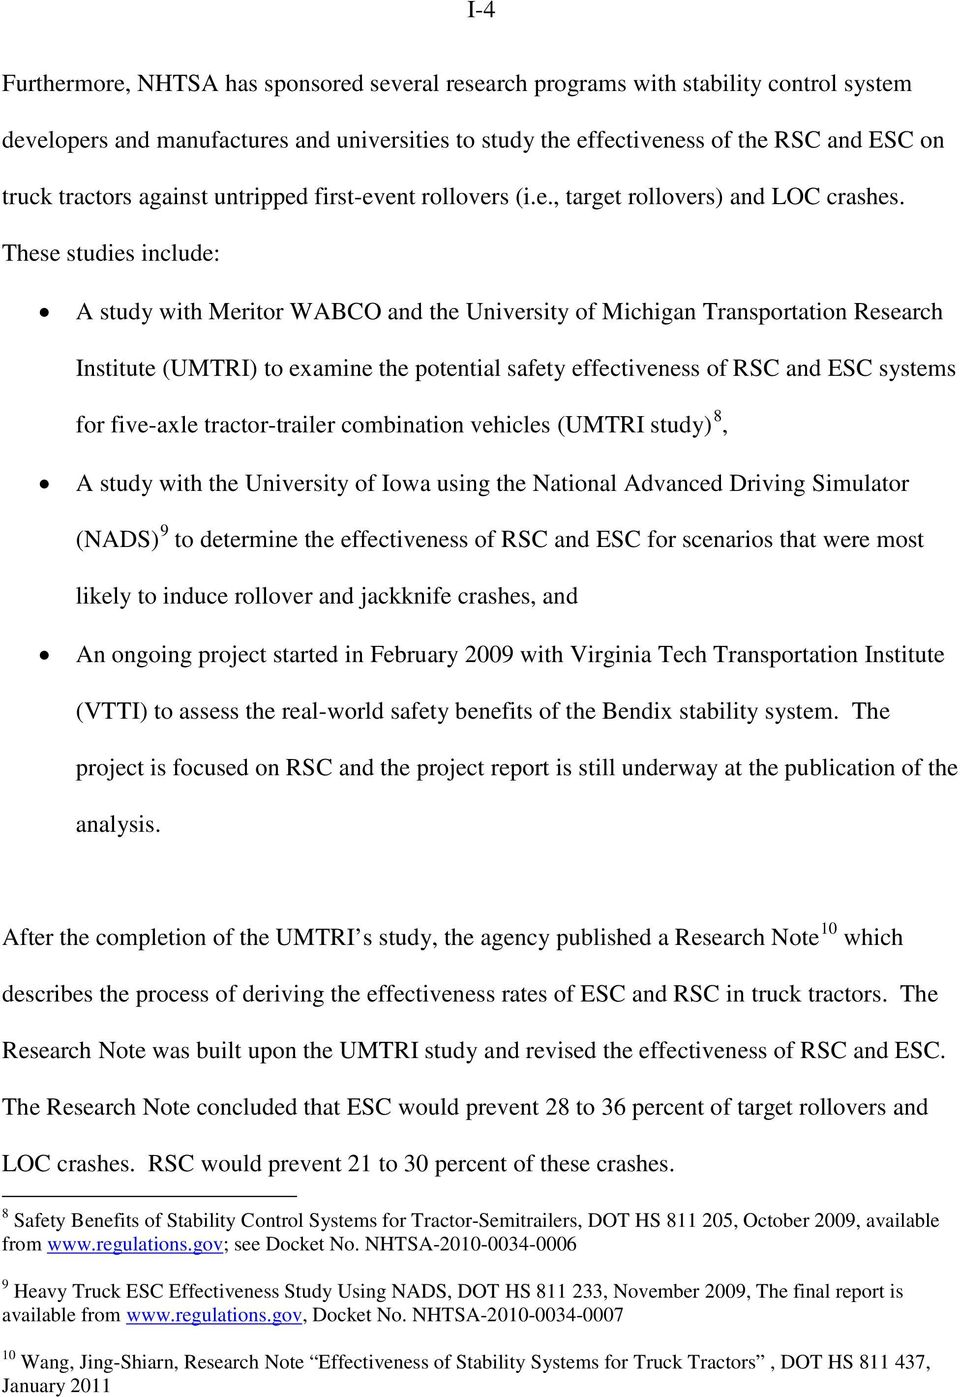 These studies include: A study with Meritor WABCO and the University of Michigan Transportation Research Institute (UMTRI) to examine the potential safety effectiveness of RSC and ESC systems for